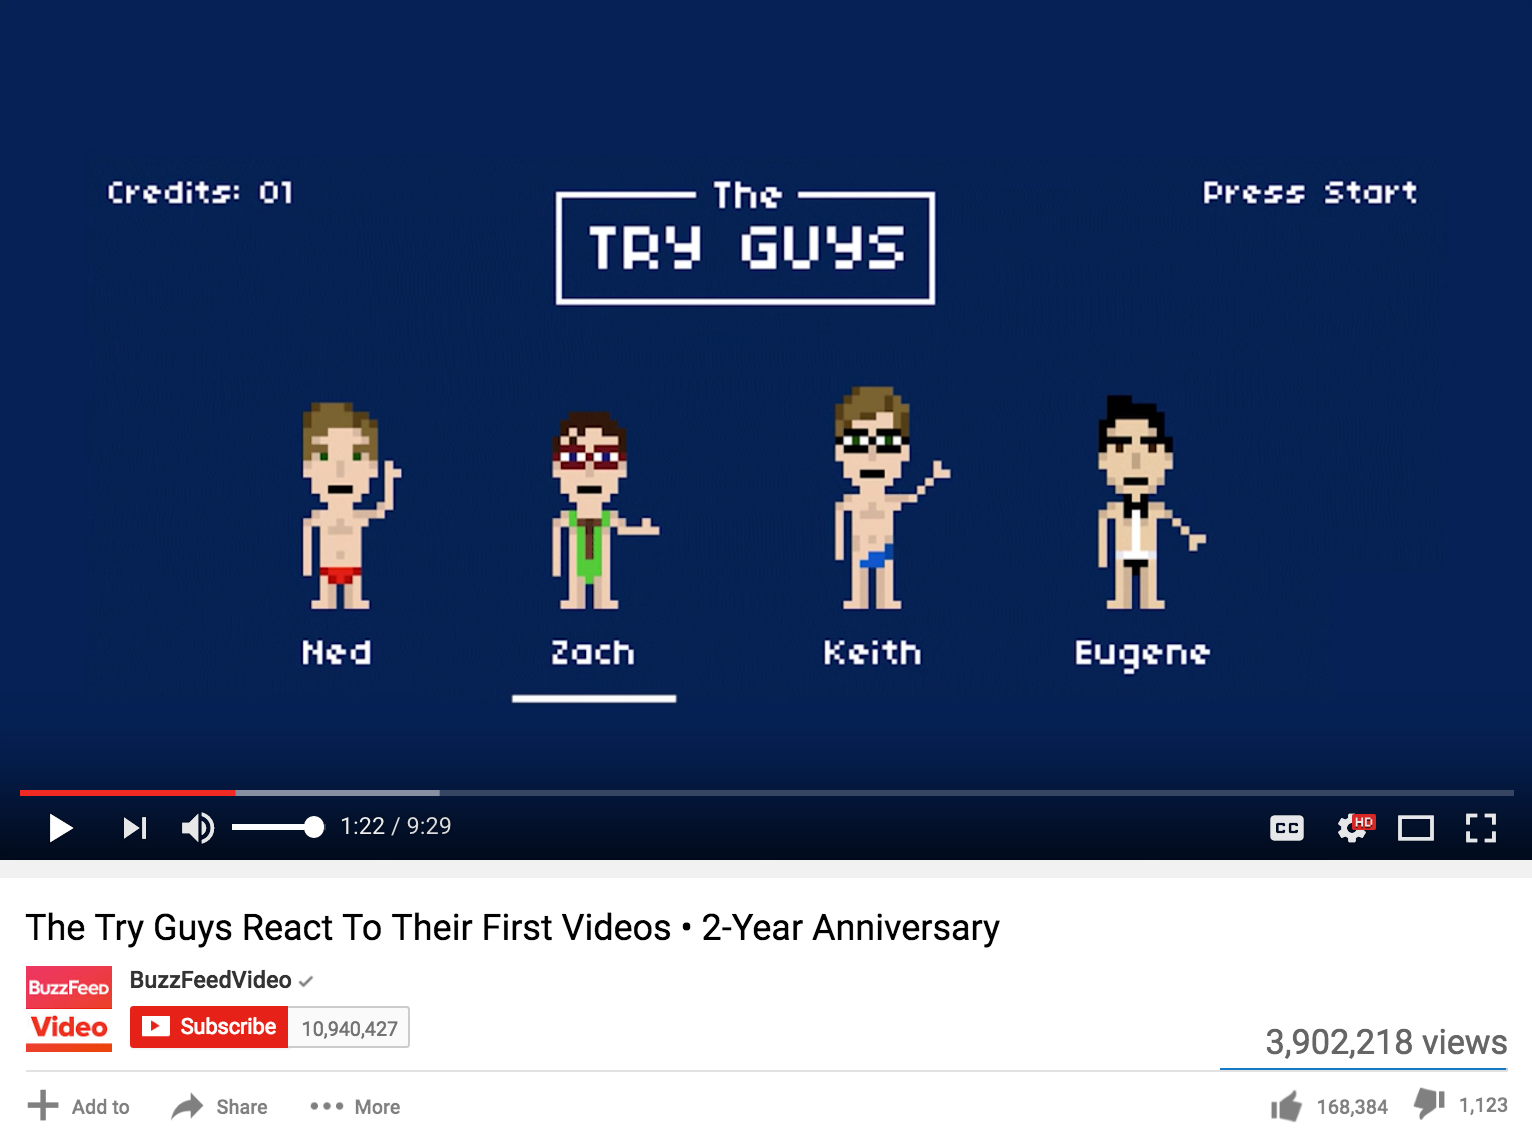 The Try Guys Used My Animation In Their Anniversary Video!